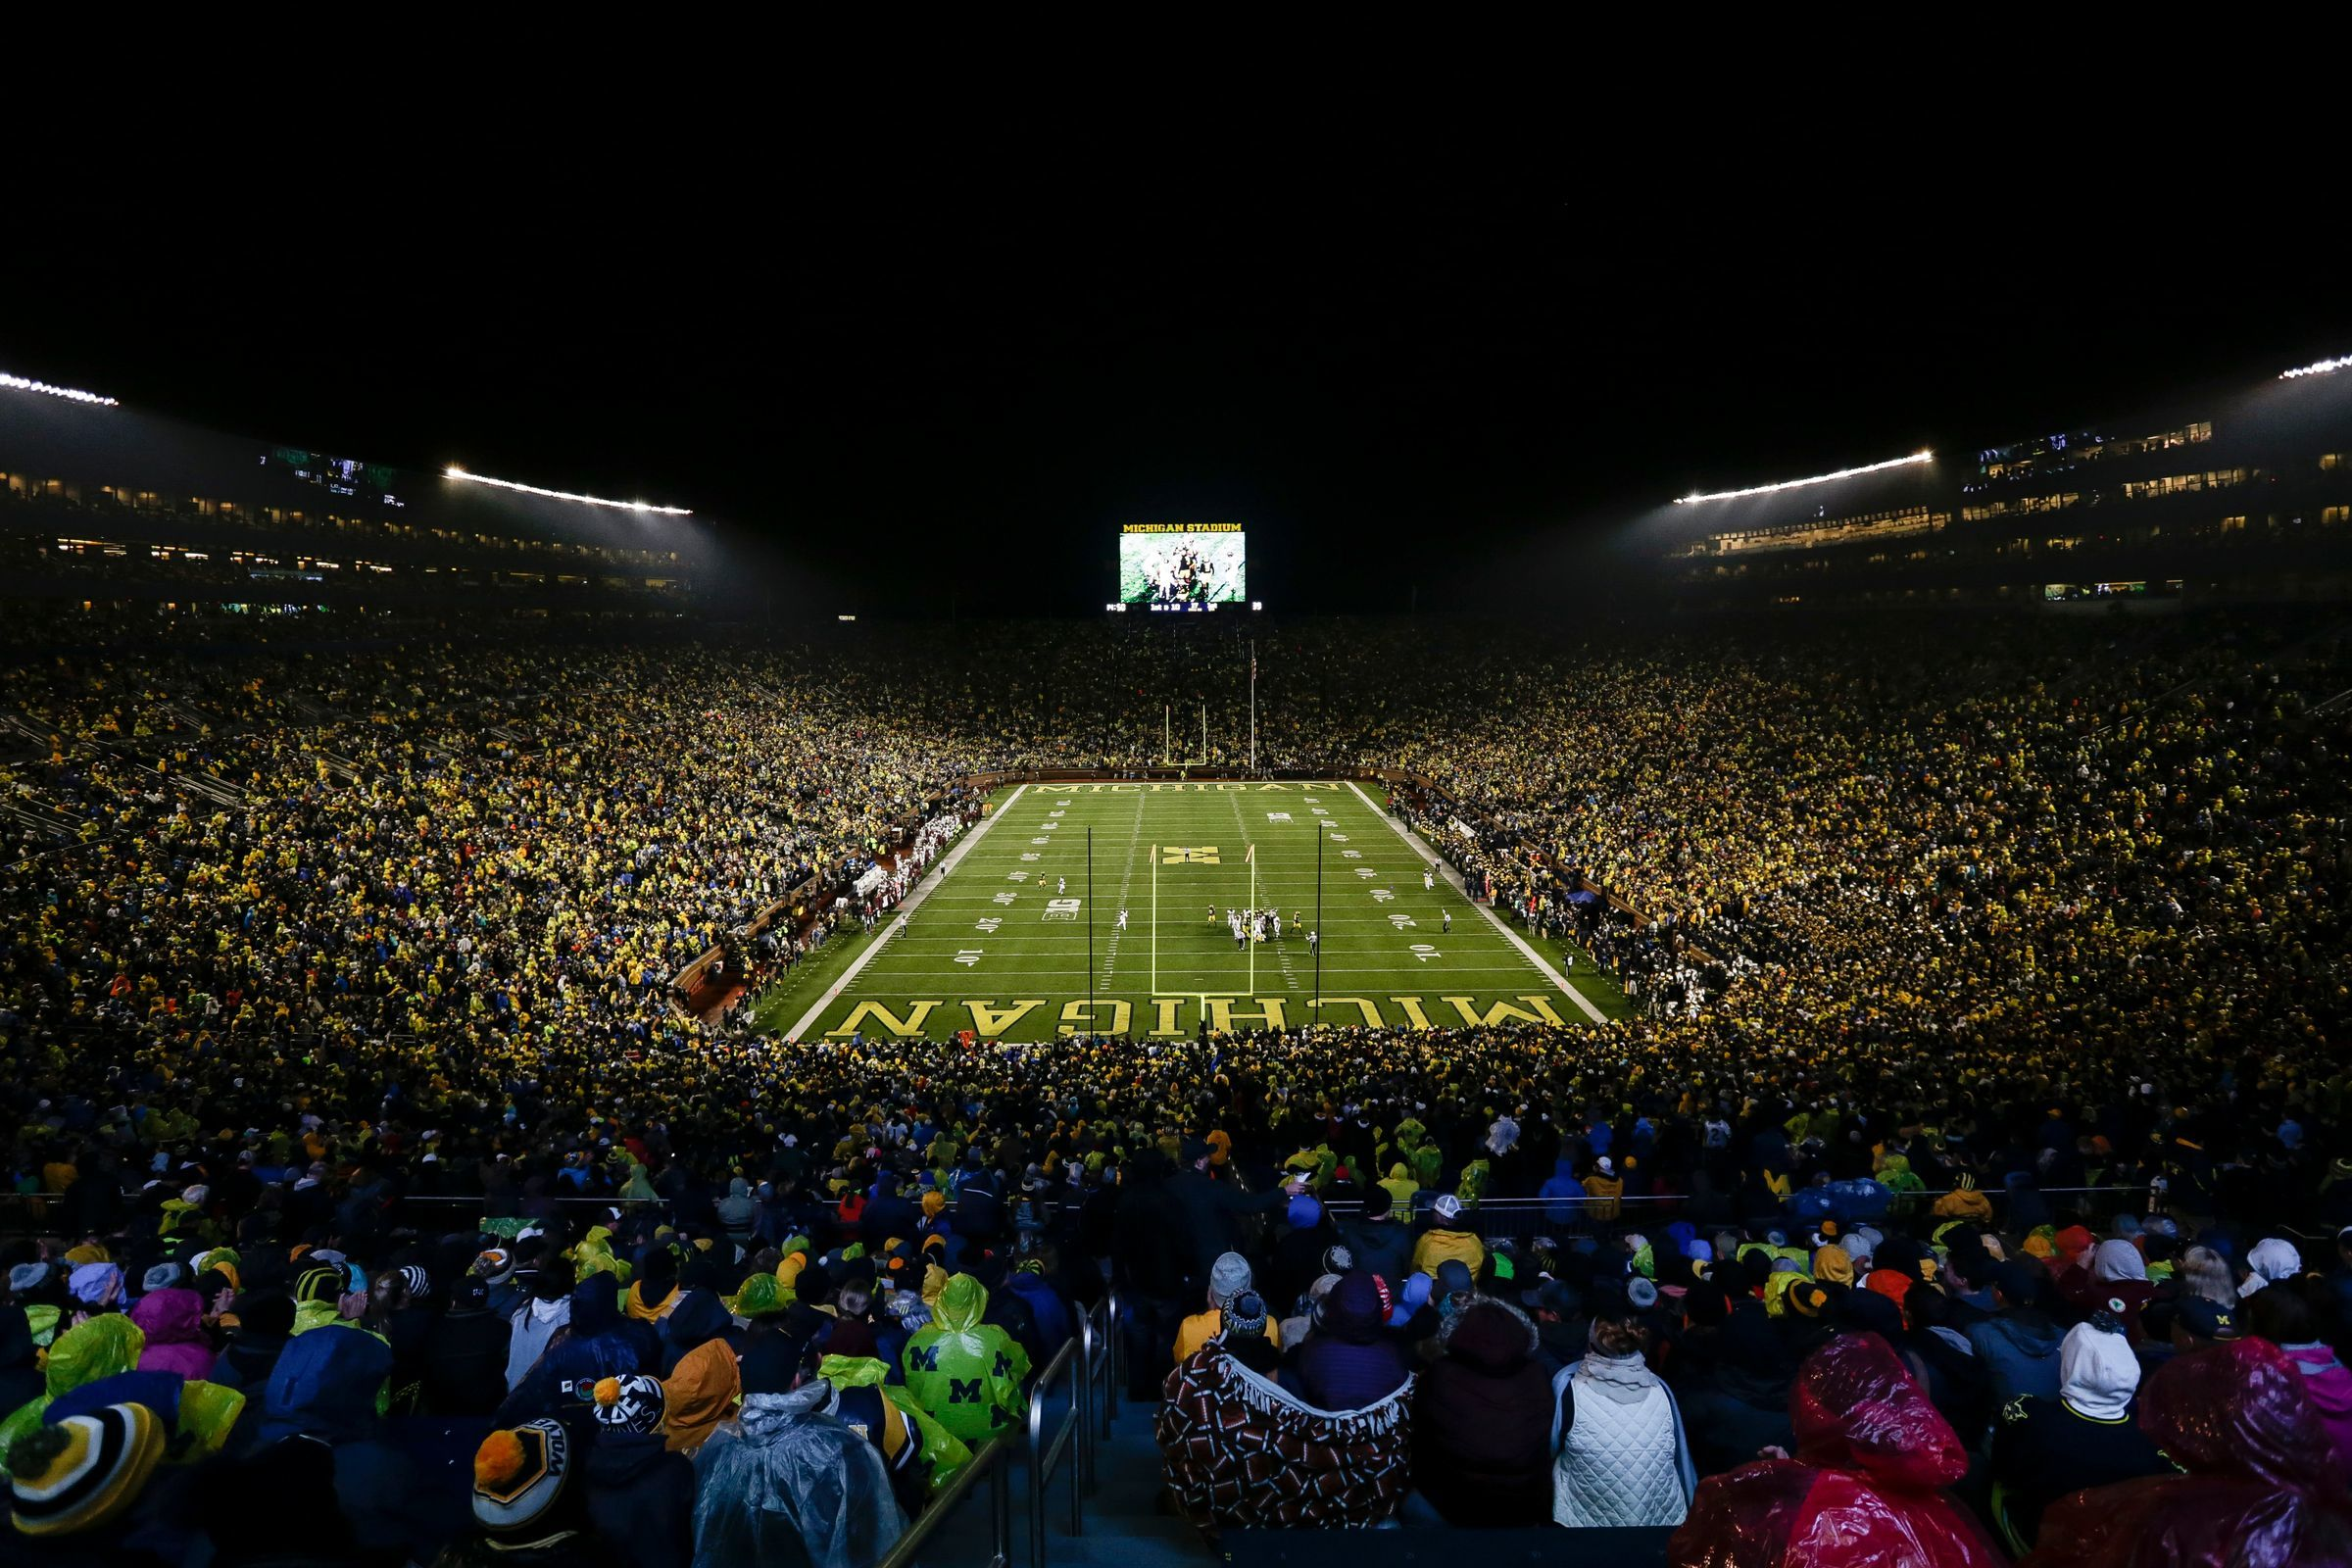 17. Western Michigan at Michigan. When: Sept. 8. Where: Ann Arbor. The buzz: Western Michigan will be big underdogs in Ann Arbor, but the Wolverines could be on upset alert.